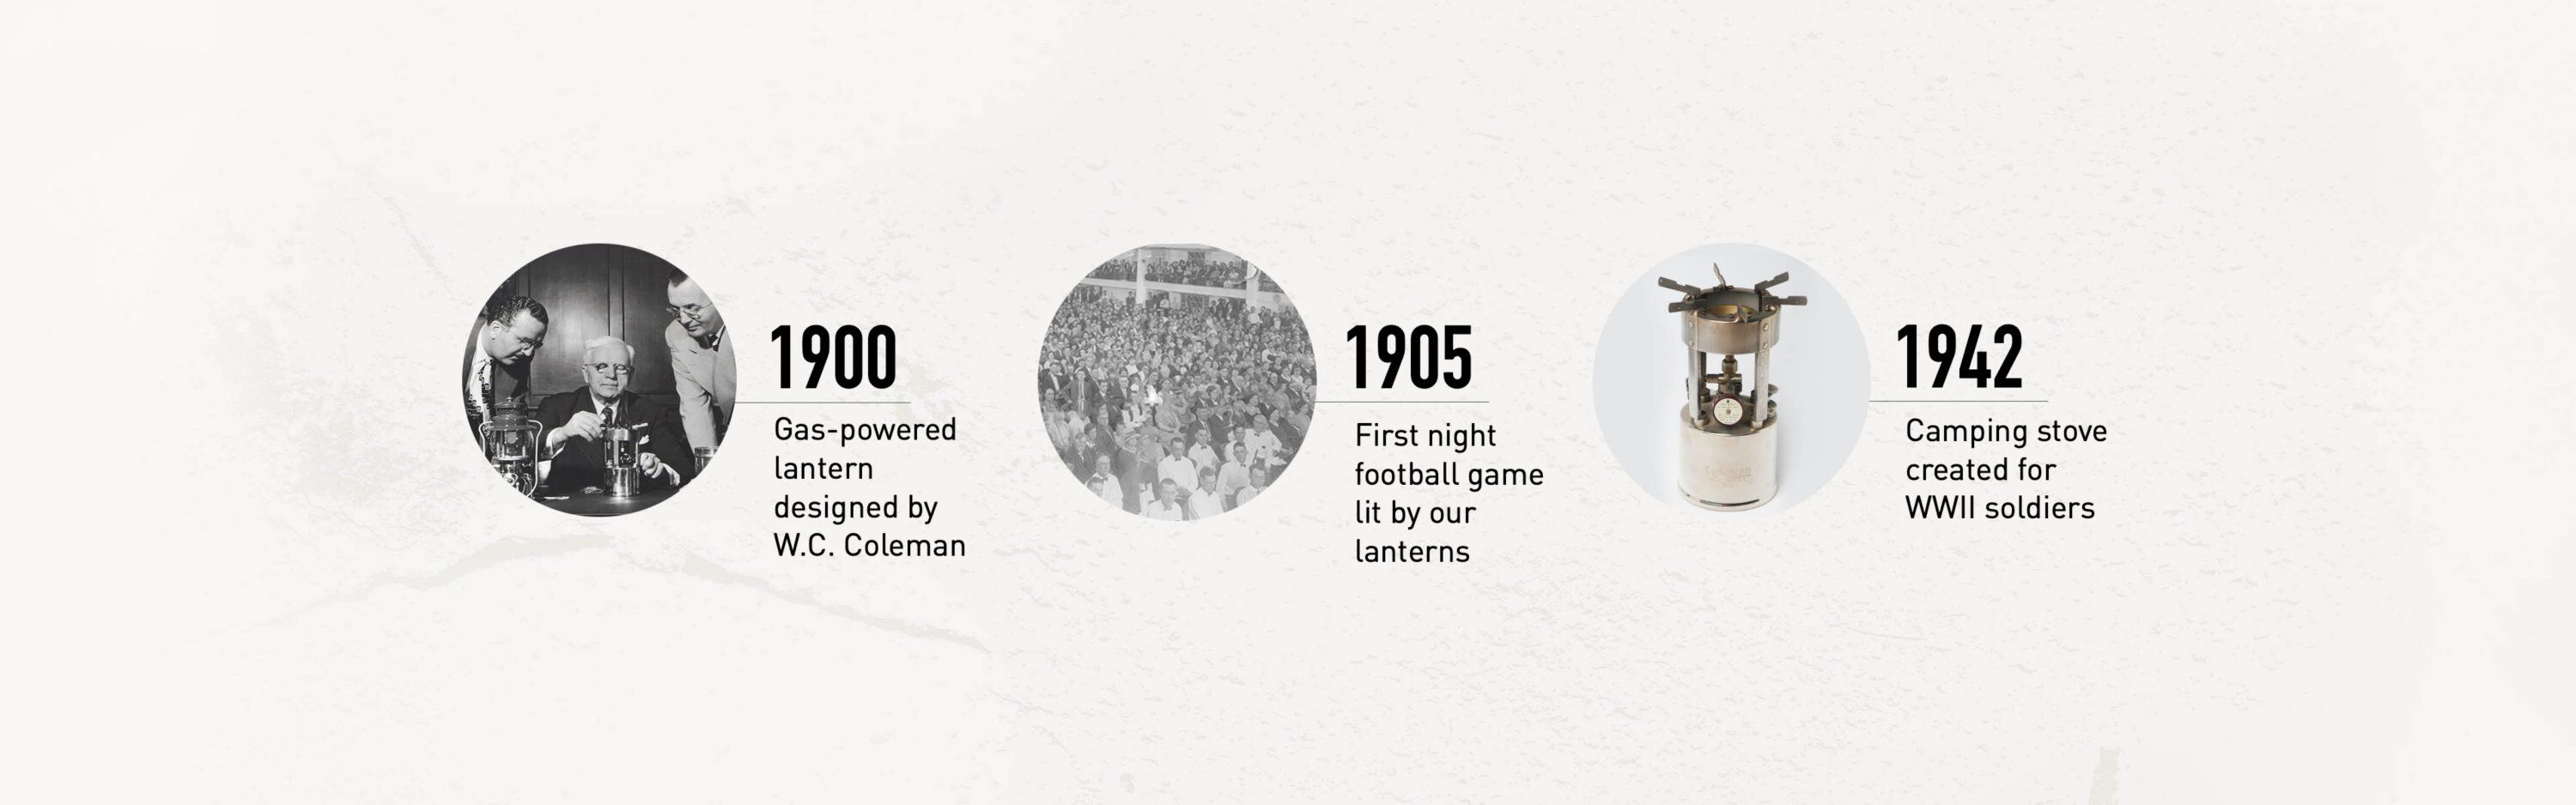 Timeline – 1900 gas lantern designed, 1905 1st night football game played lit by lanterns, 1942 camping stove made for WWII